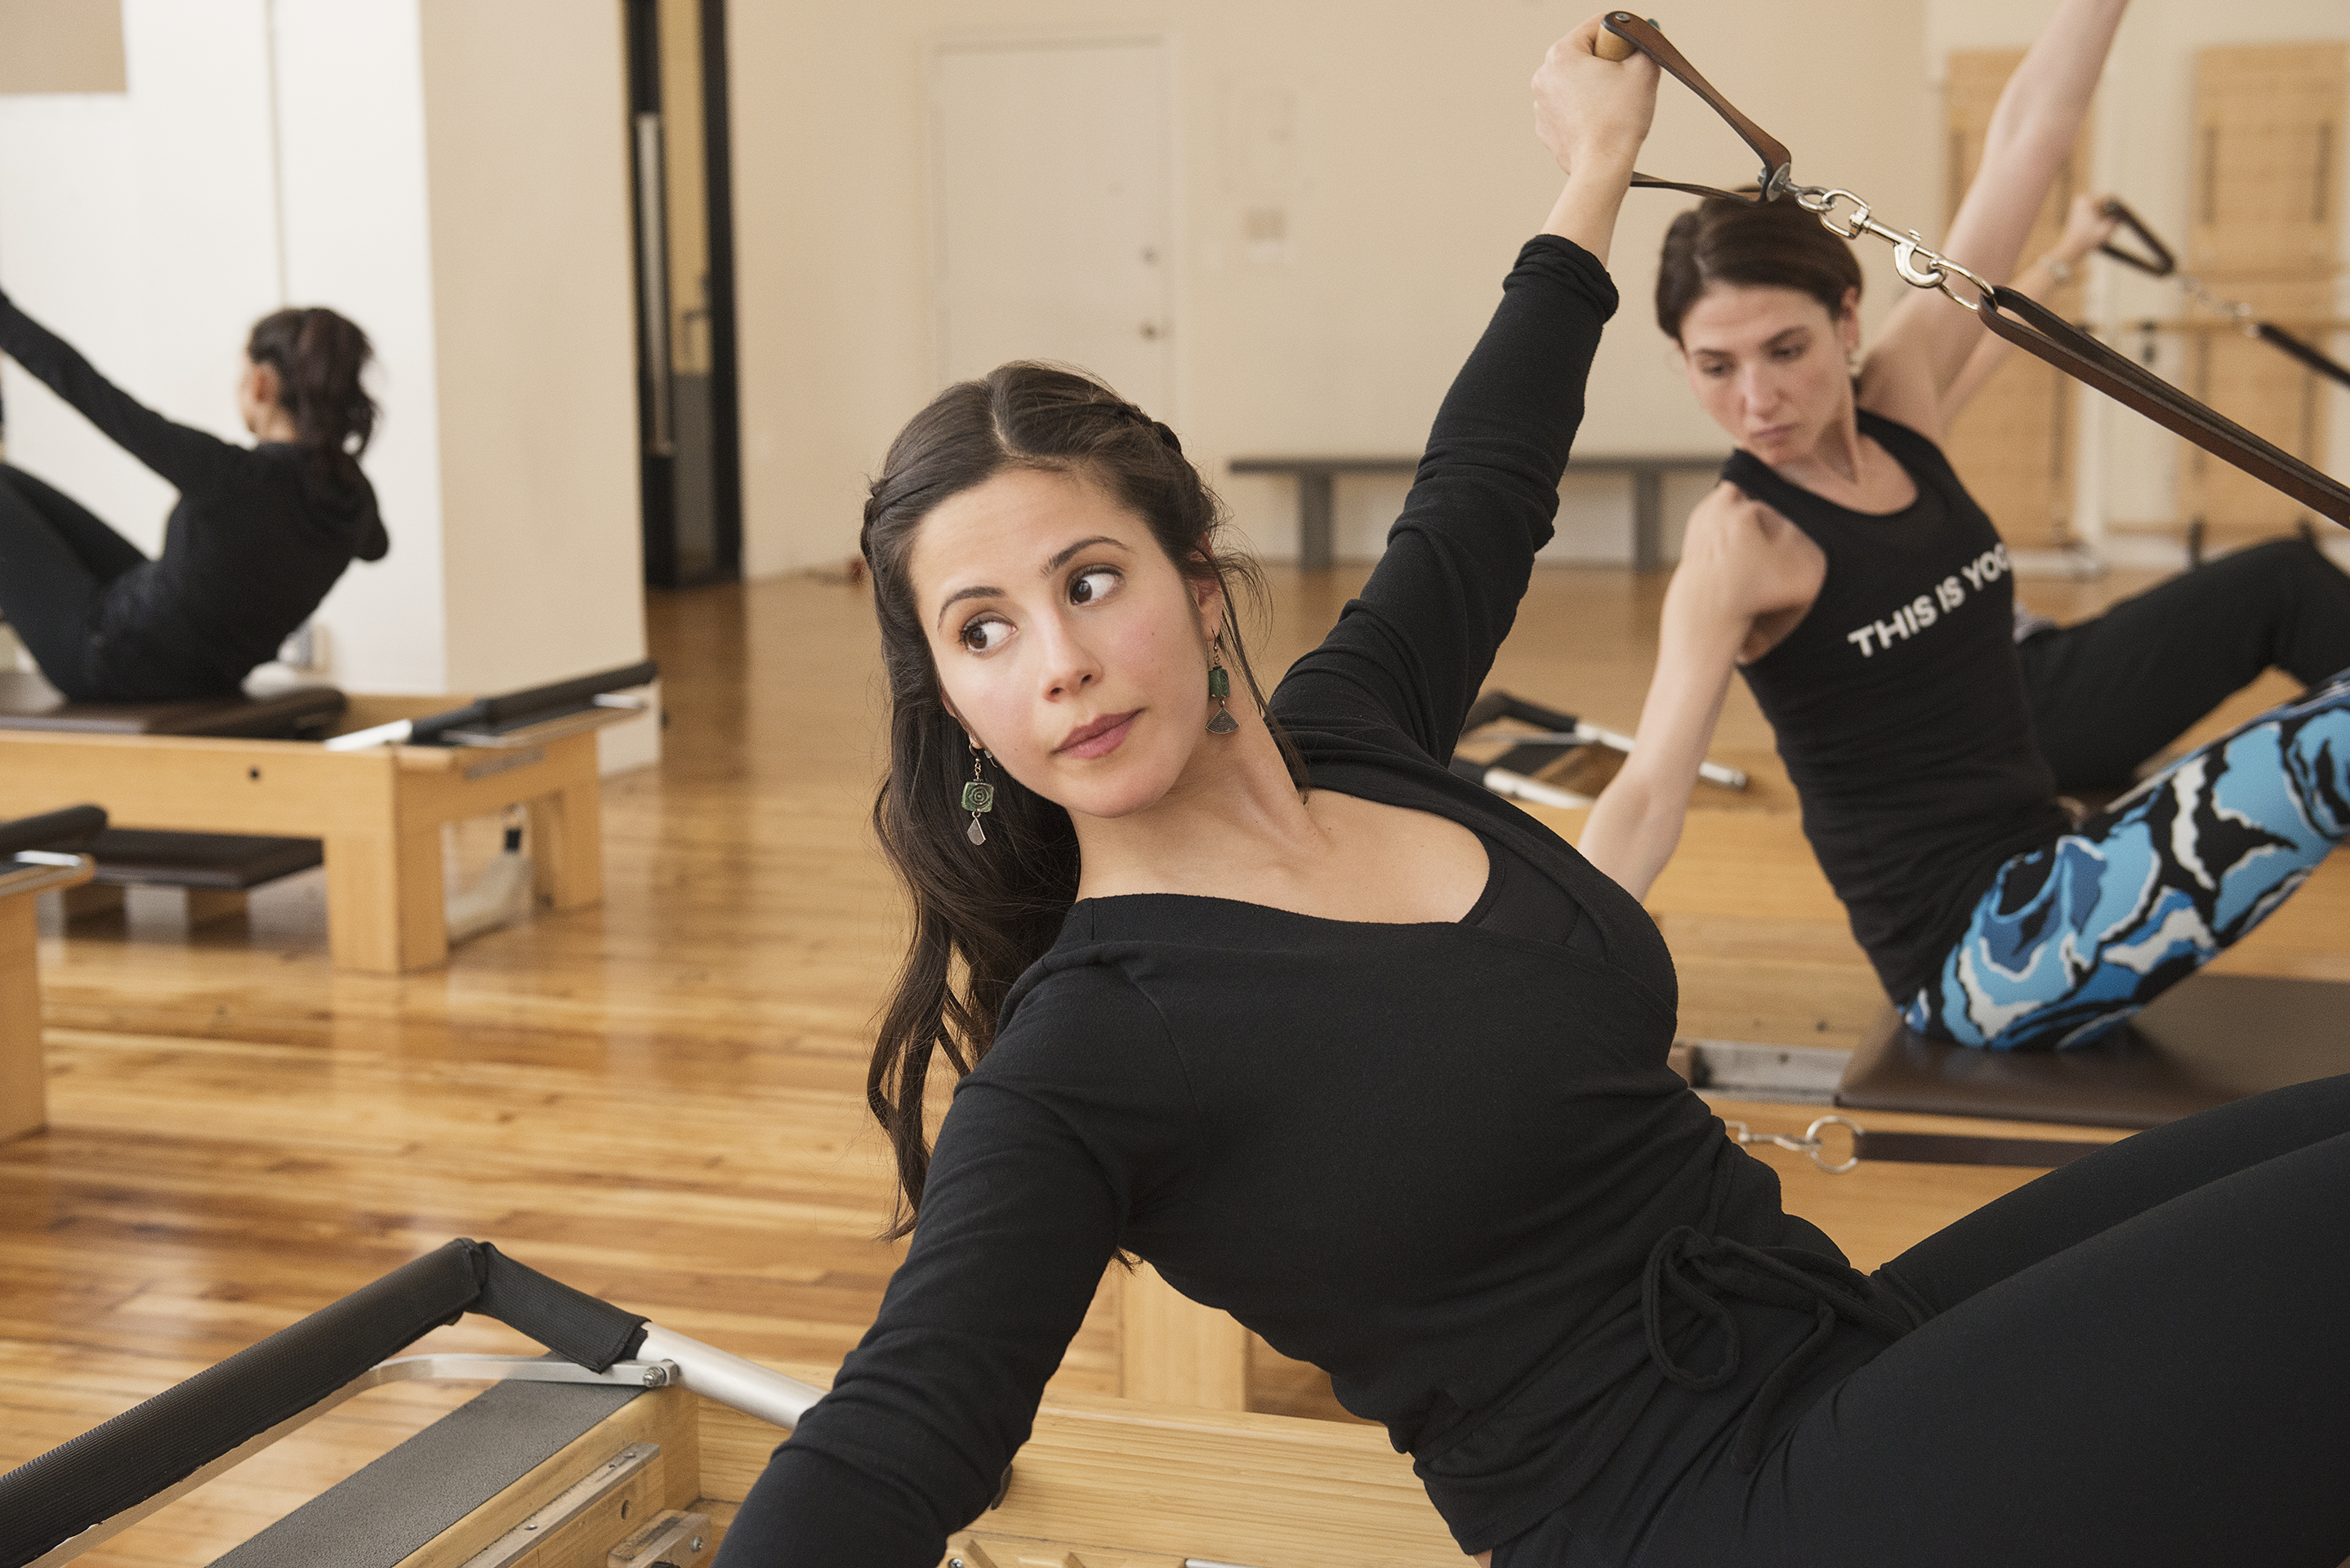 Core Pilates NYC's classes include The Pilates Workout or Trio session.